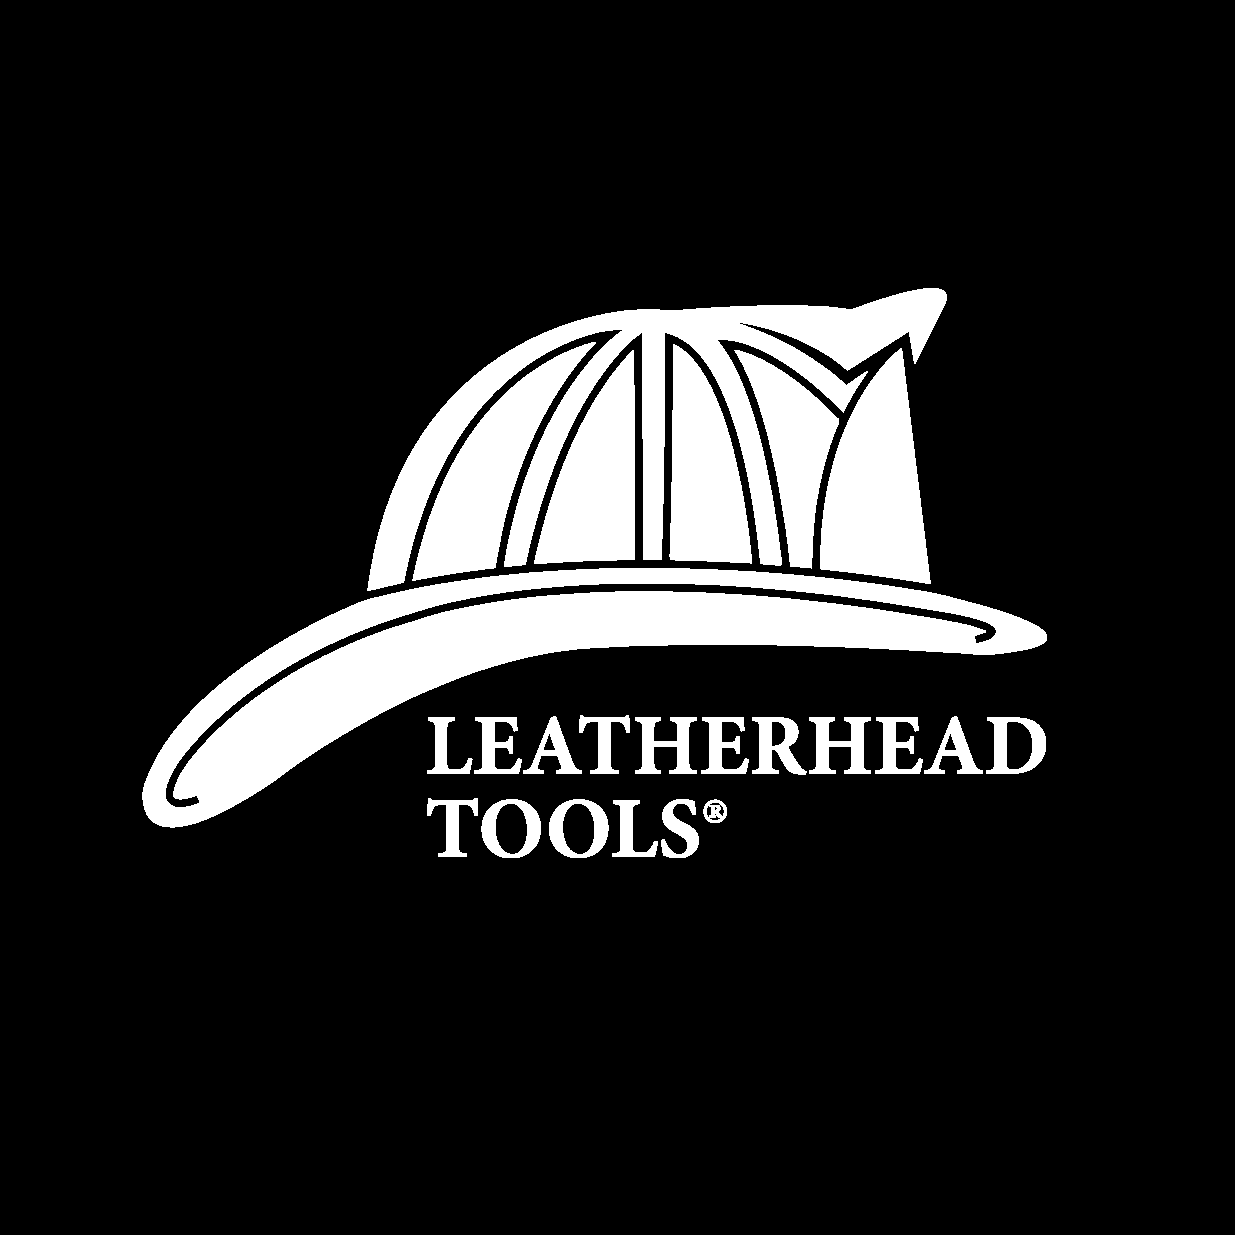 Leatherhead Tools launches new website, social media channels